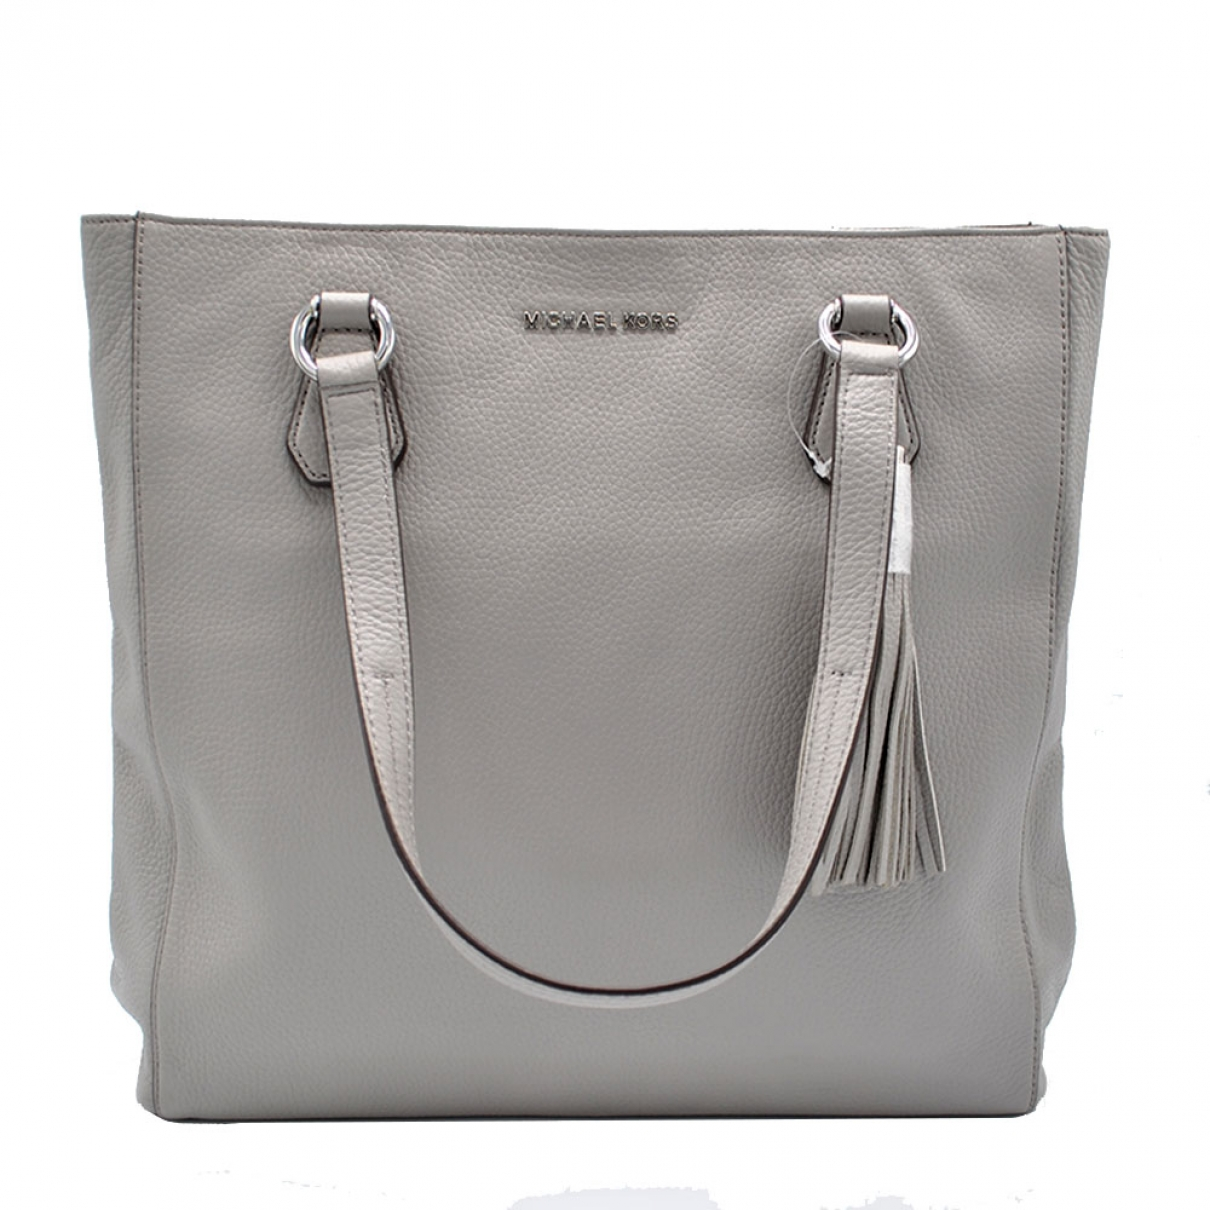 Michael Kors \N Grey Leather handbag for Women \N